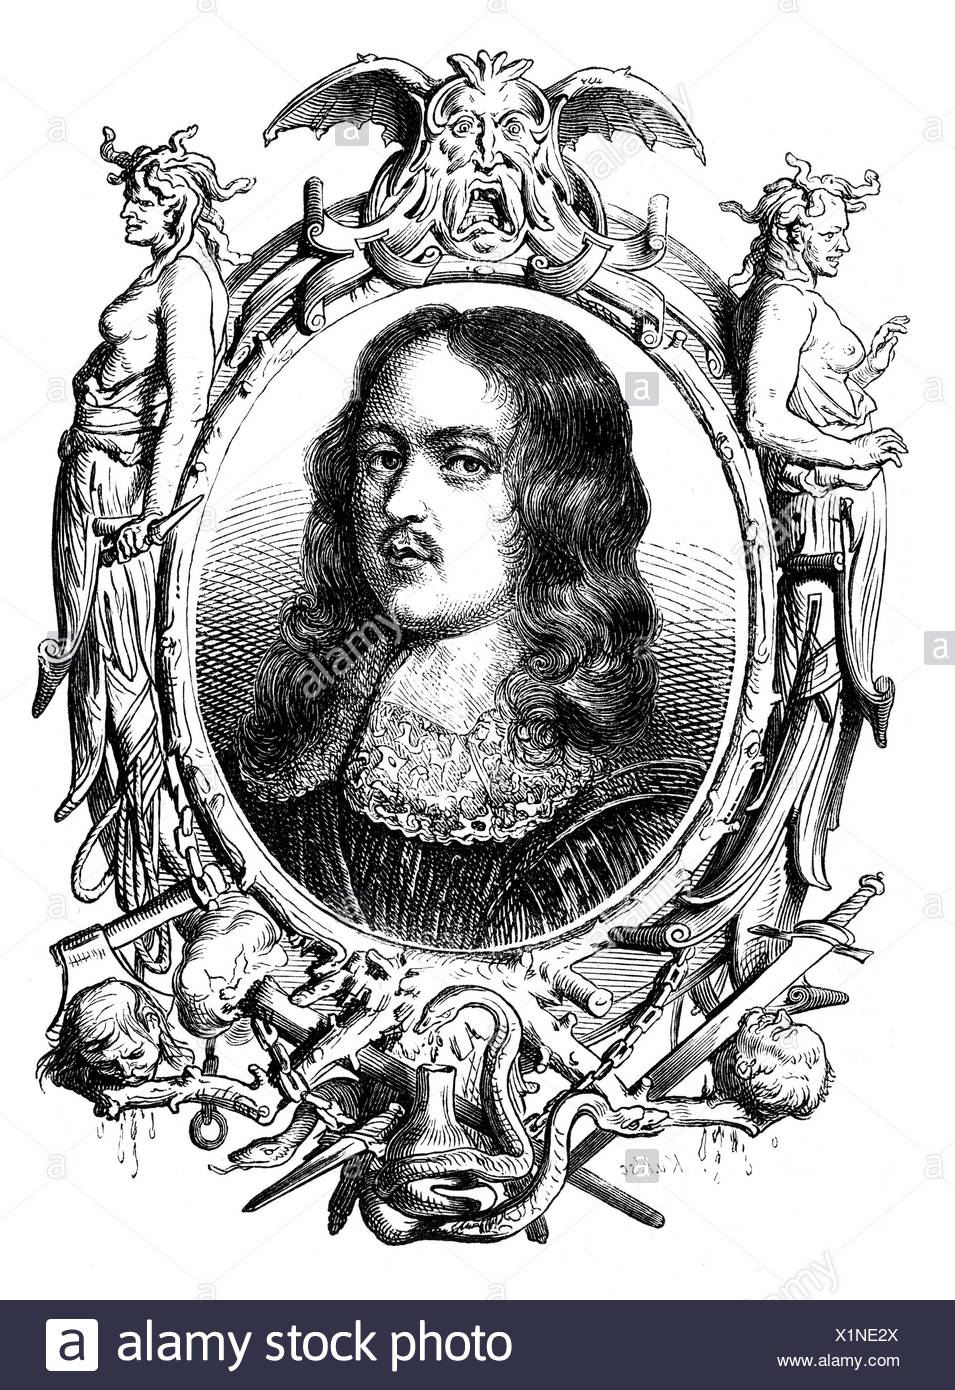 Hales, Edward, 1576 - 1654, English politician, Member of the Long Parliament 1640 - 1645, portrait, wood engraving, 19th century, Additional-Rights-Clearances-NA - Stock Image